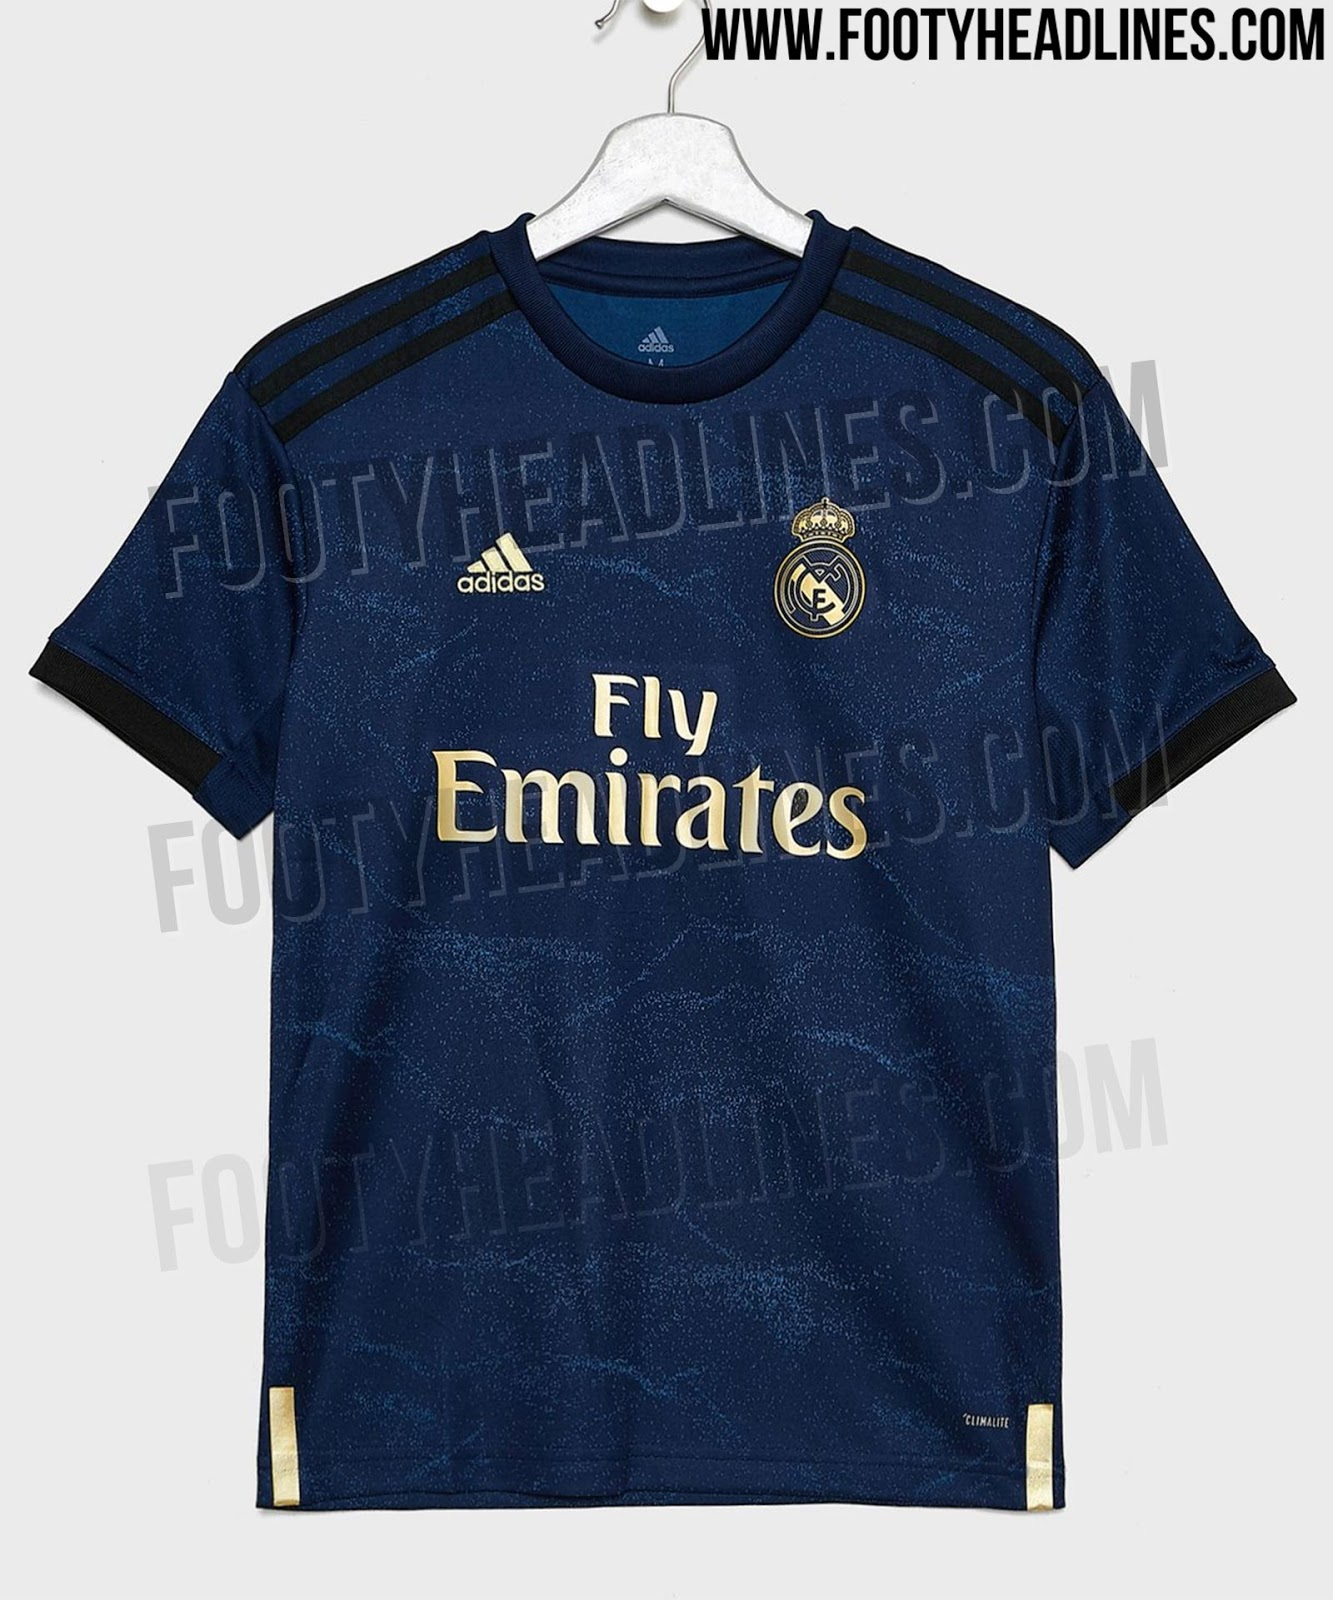 huge selection of 9a5ab b3364 Real Madrid 19-20 Home, Away & Third Kits Leaked - Release ...